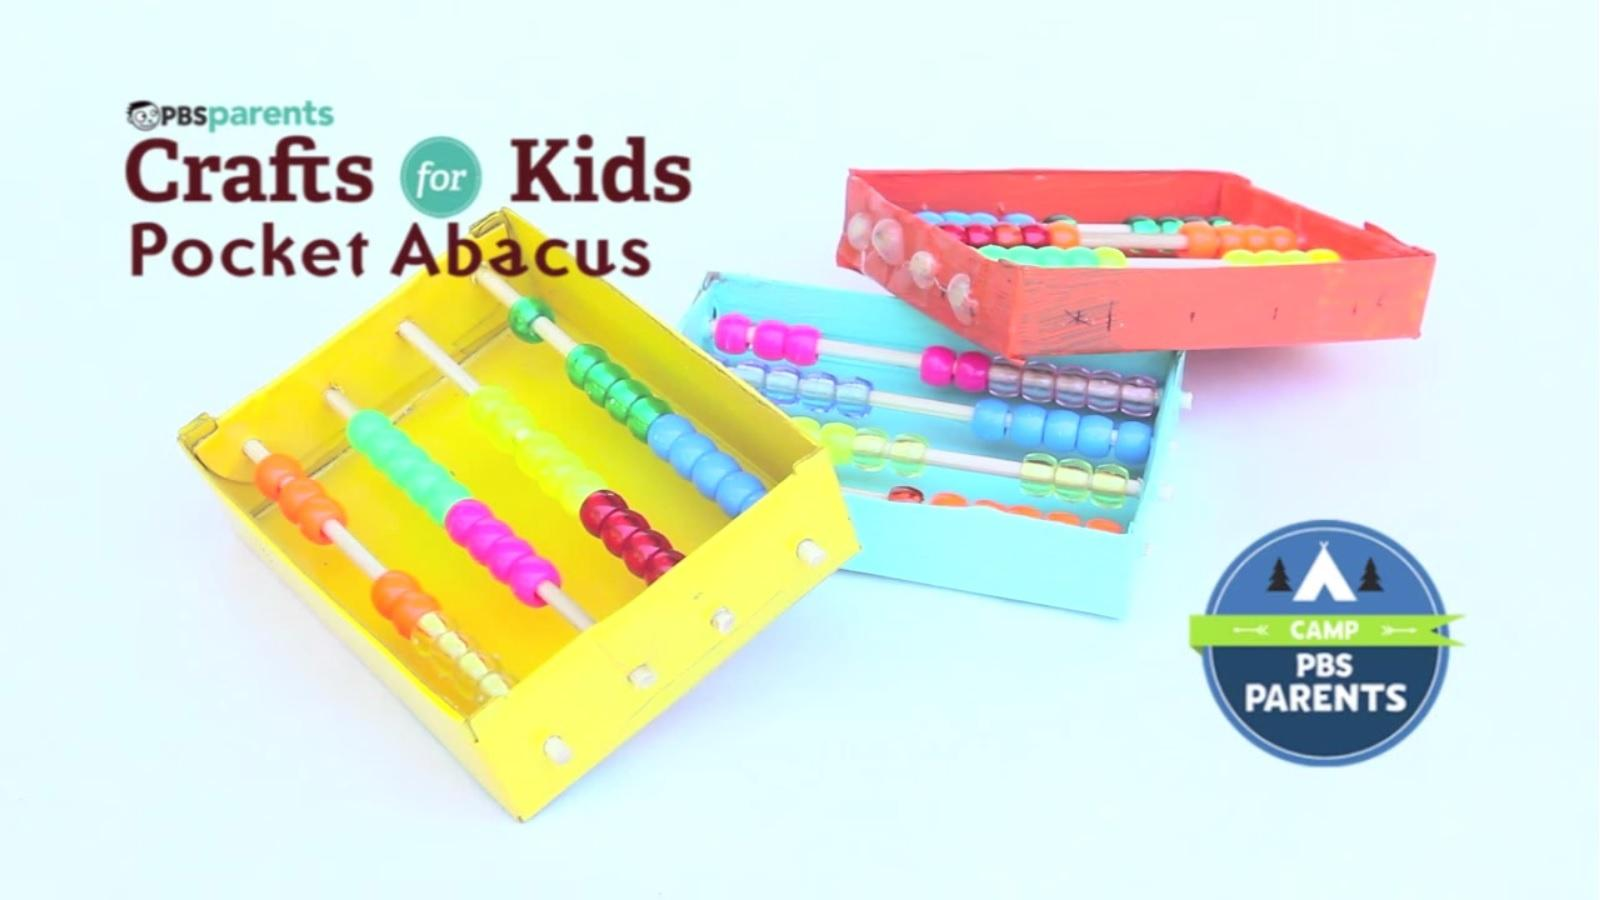 Crafts for kids pbs for Craft kings wv menu